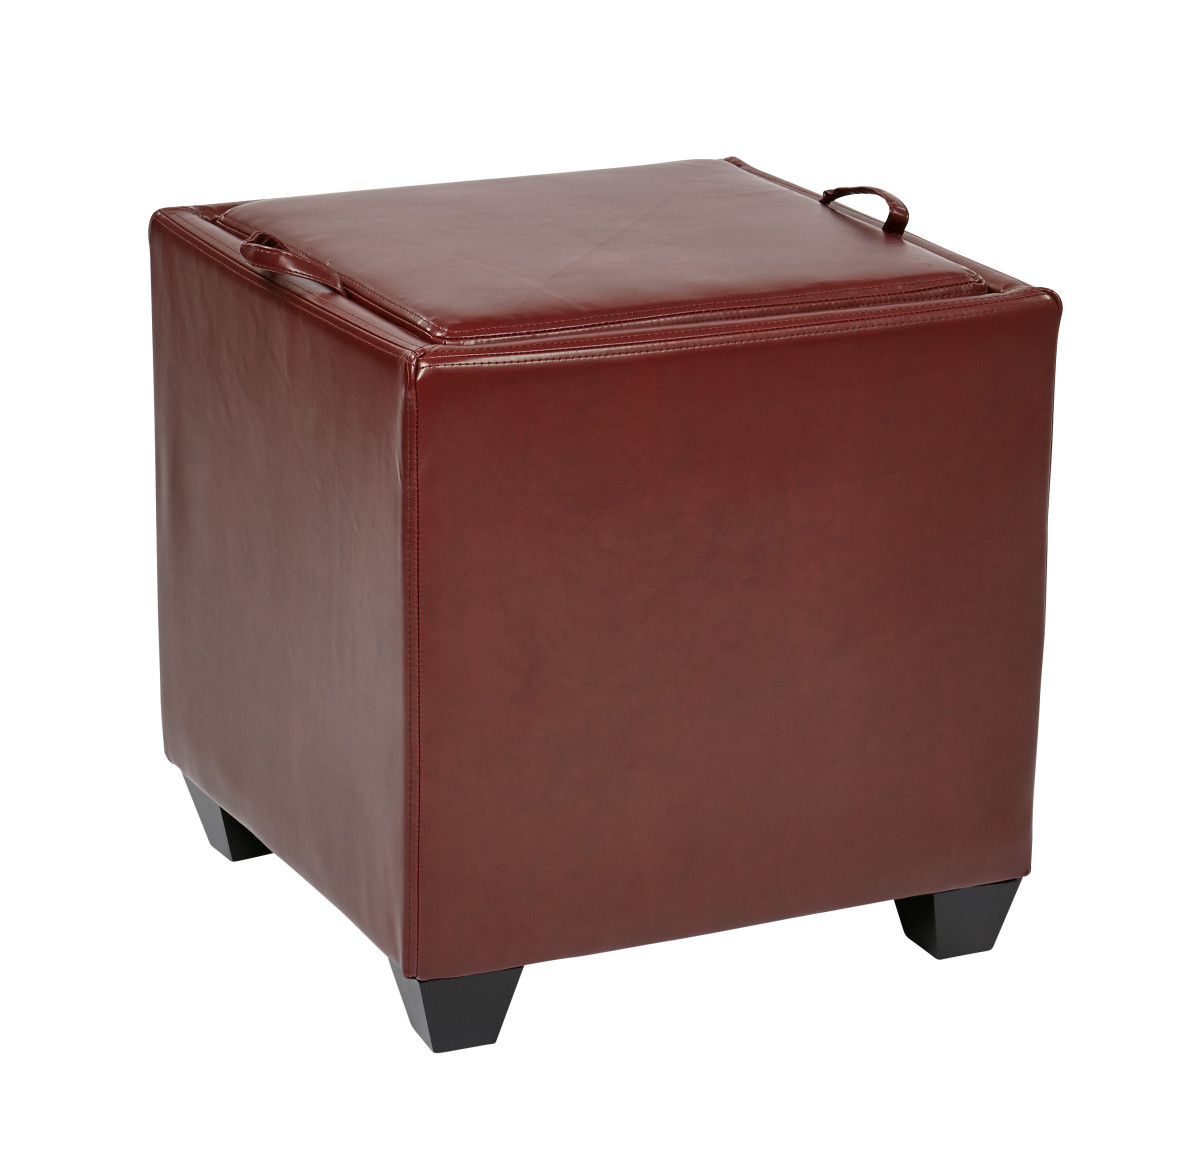 storage ottoman with tray in crimson red bonded leather. Black Bedroom Furniture Sets. Home Design Ideas